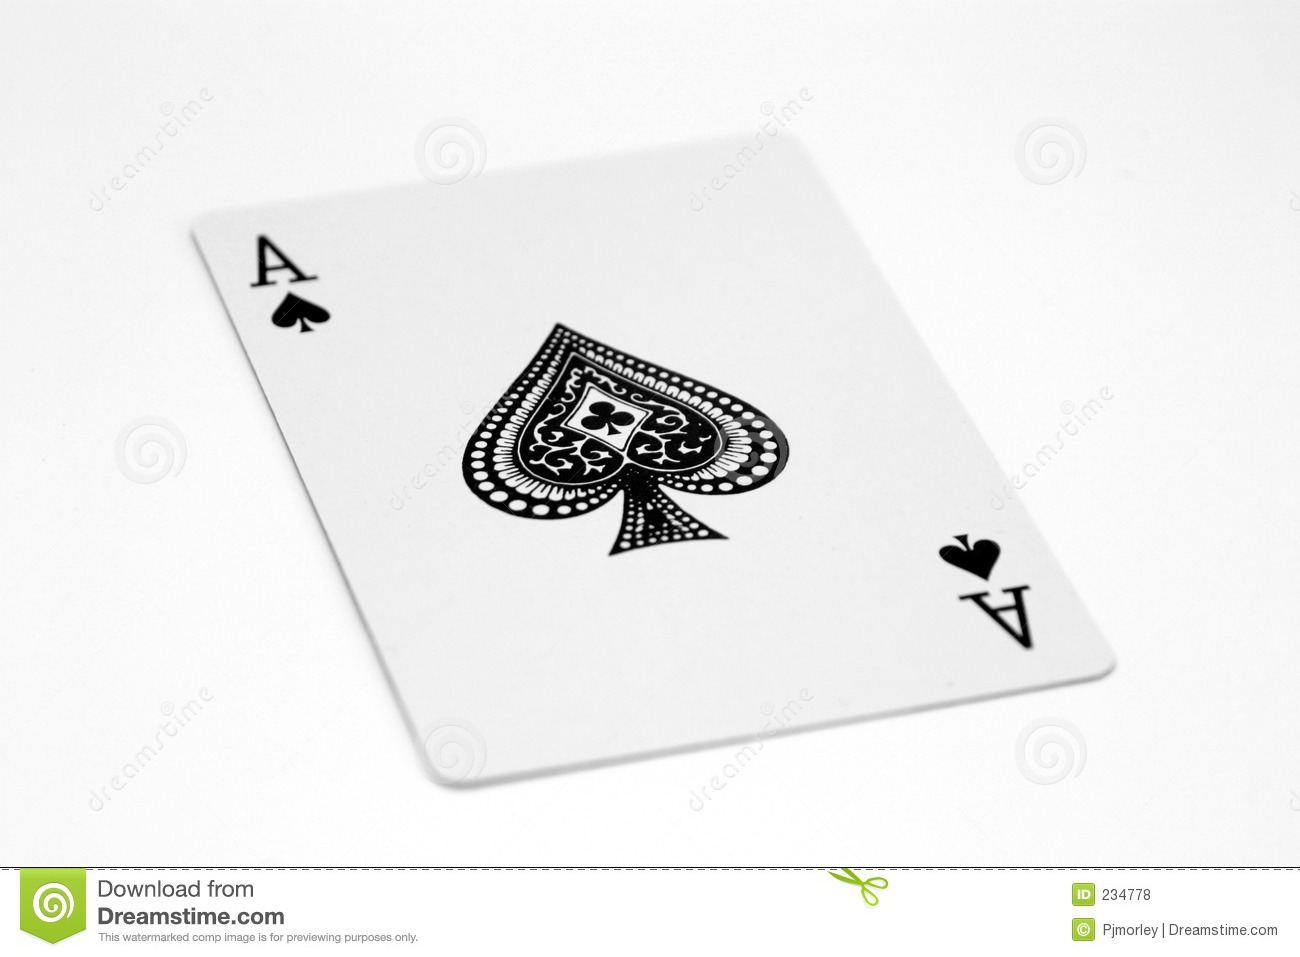 What is the probability of drawing four aces in a row from